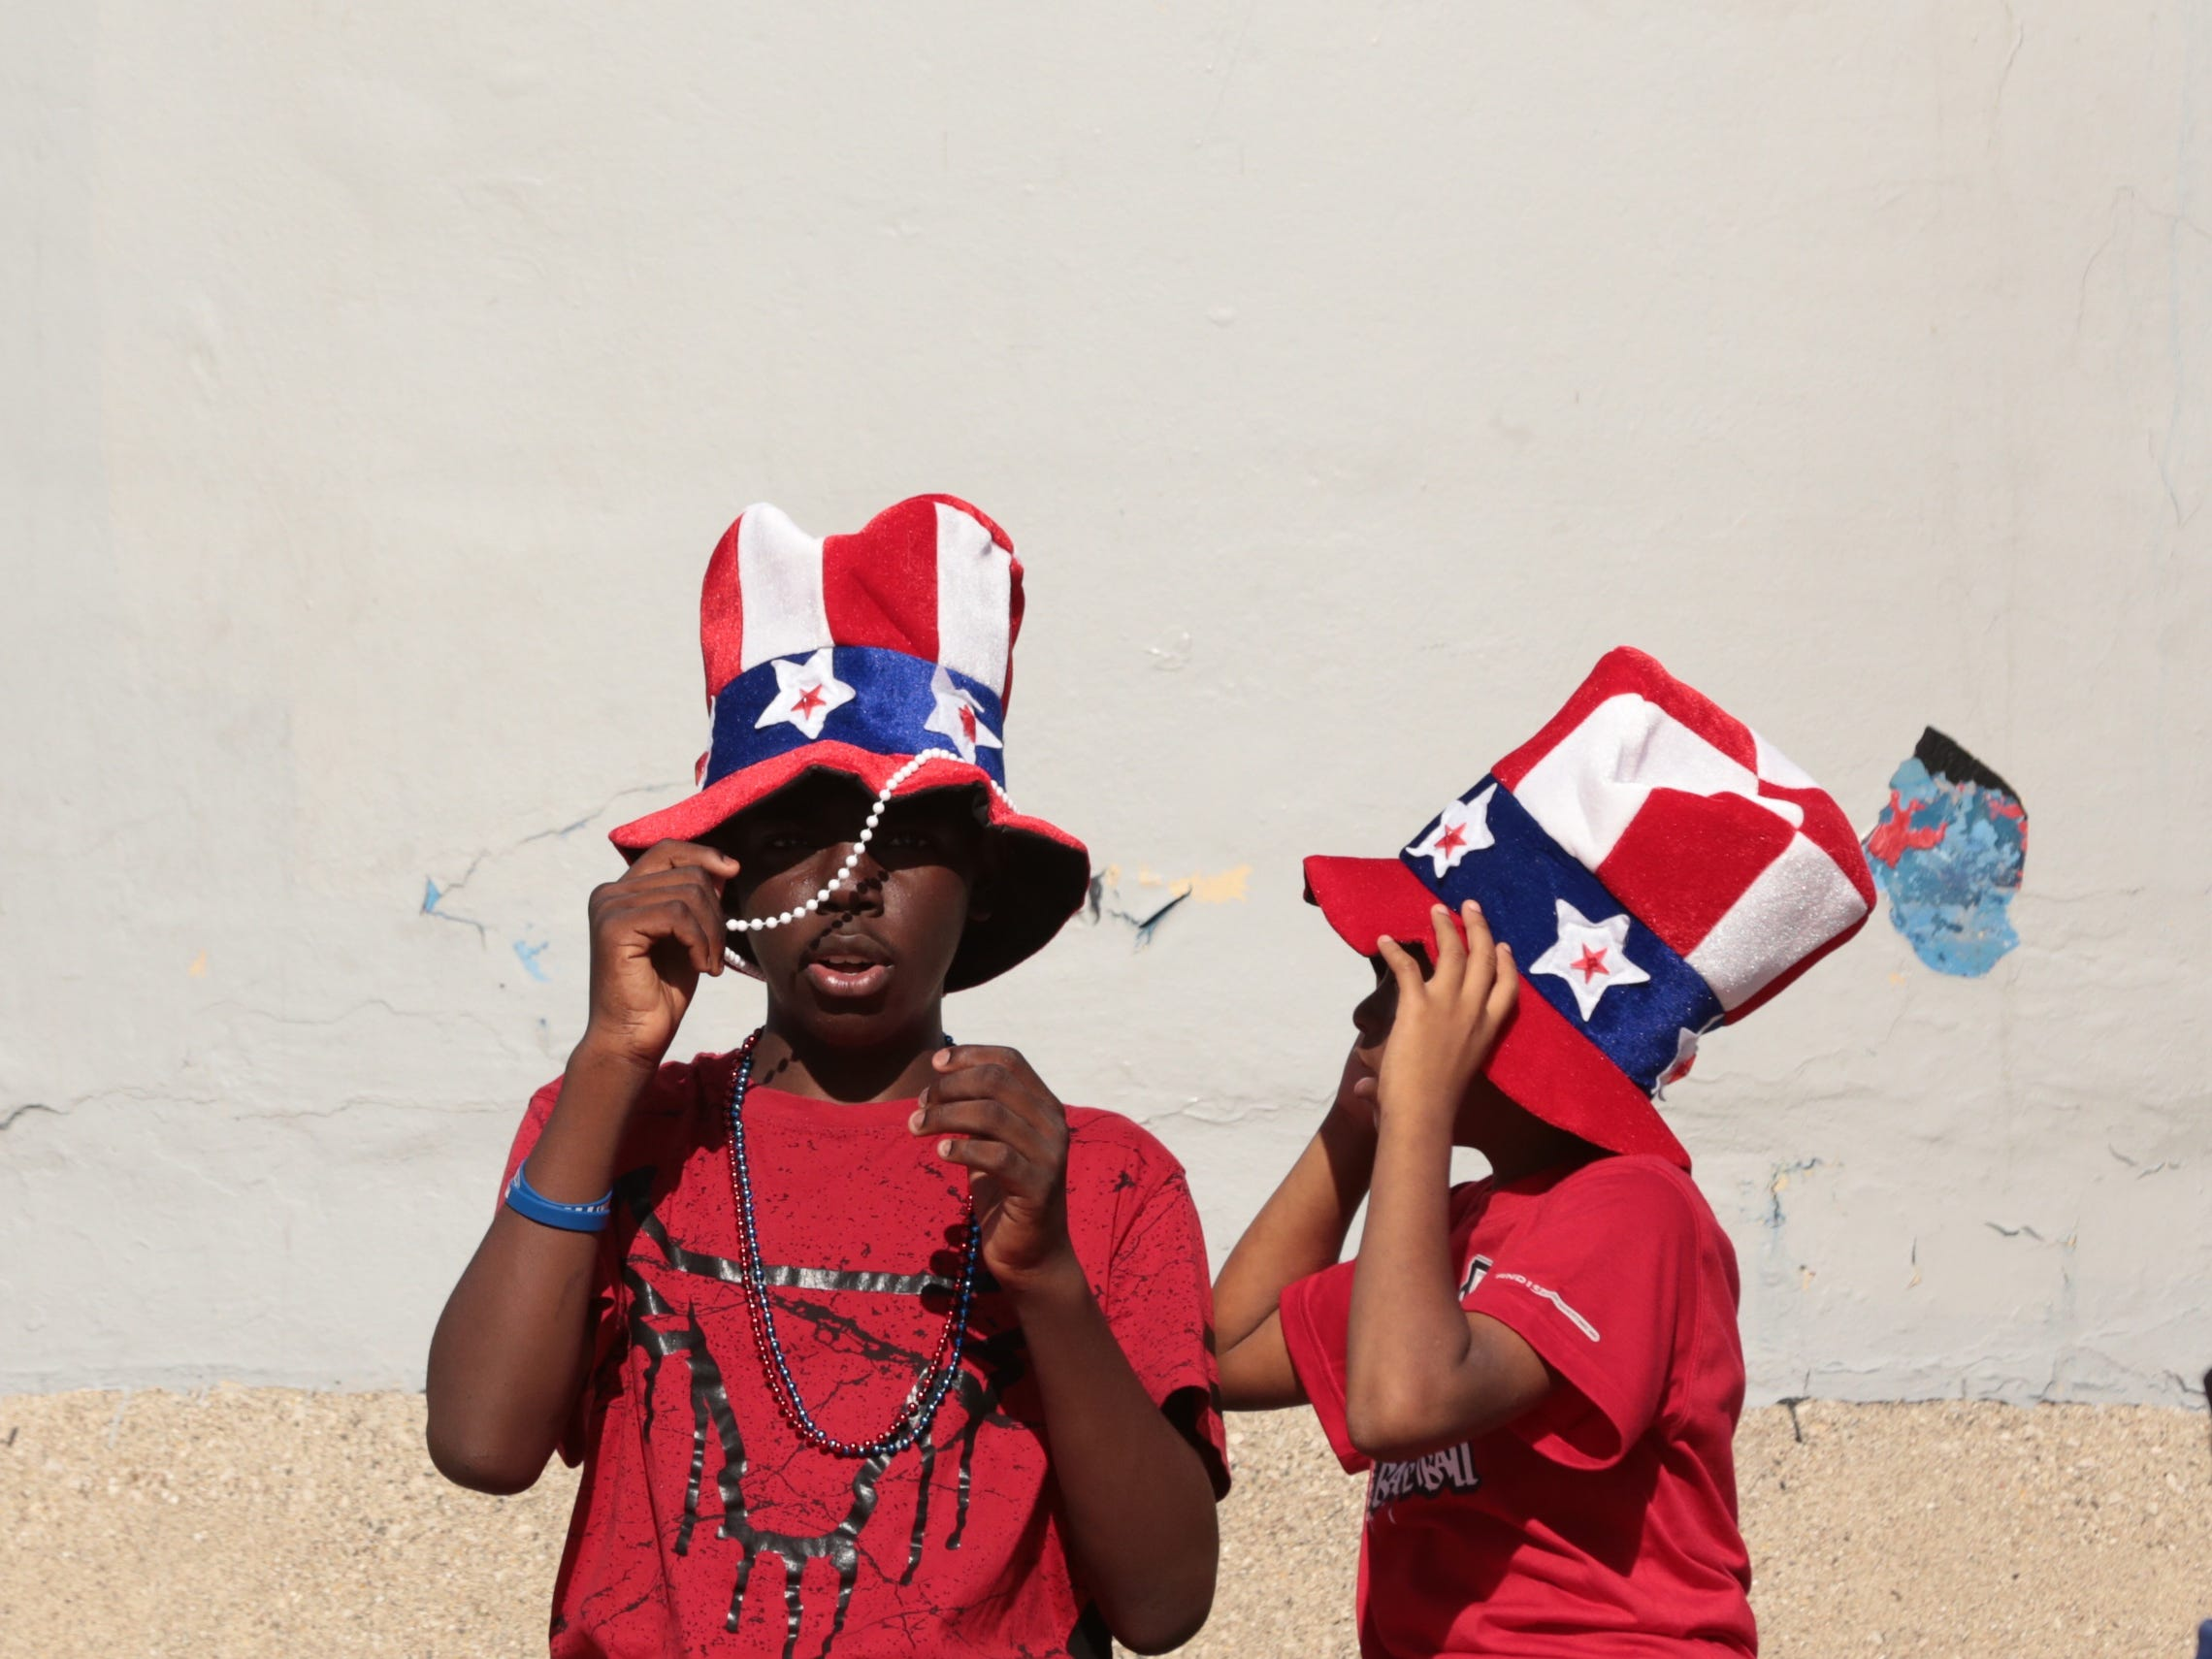 Elijah Wilson (left) of Detroit and his brother Ar'nez Gordon of Detroit wear matching hats while waiting for the start of the 2018 Ford Fireworks at Hart Plaza in downtown Detroit on Monday, June 25, 2018.